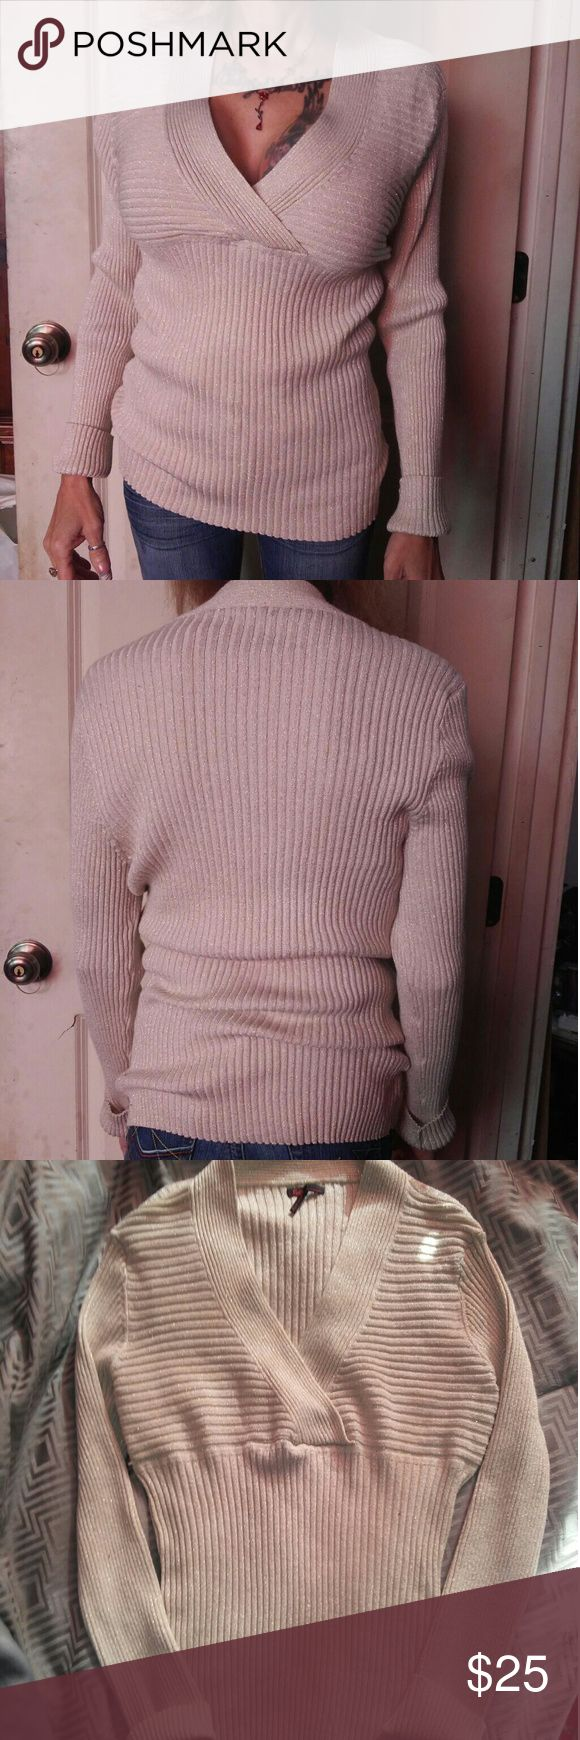 V-neck cream with gold sparkle sweater Rarely worn mid-weight cream with gold sparkle v-neck sweater is in great condition and very comfortable. Very versatile as it can be paired with jeans, slacks, skirt or suit. Runs a little small. Sofia Vergara Sweaters V-Necks